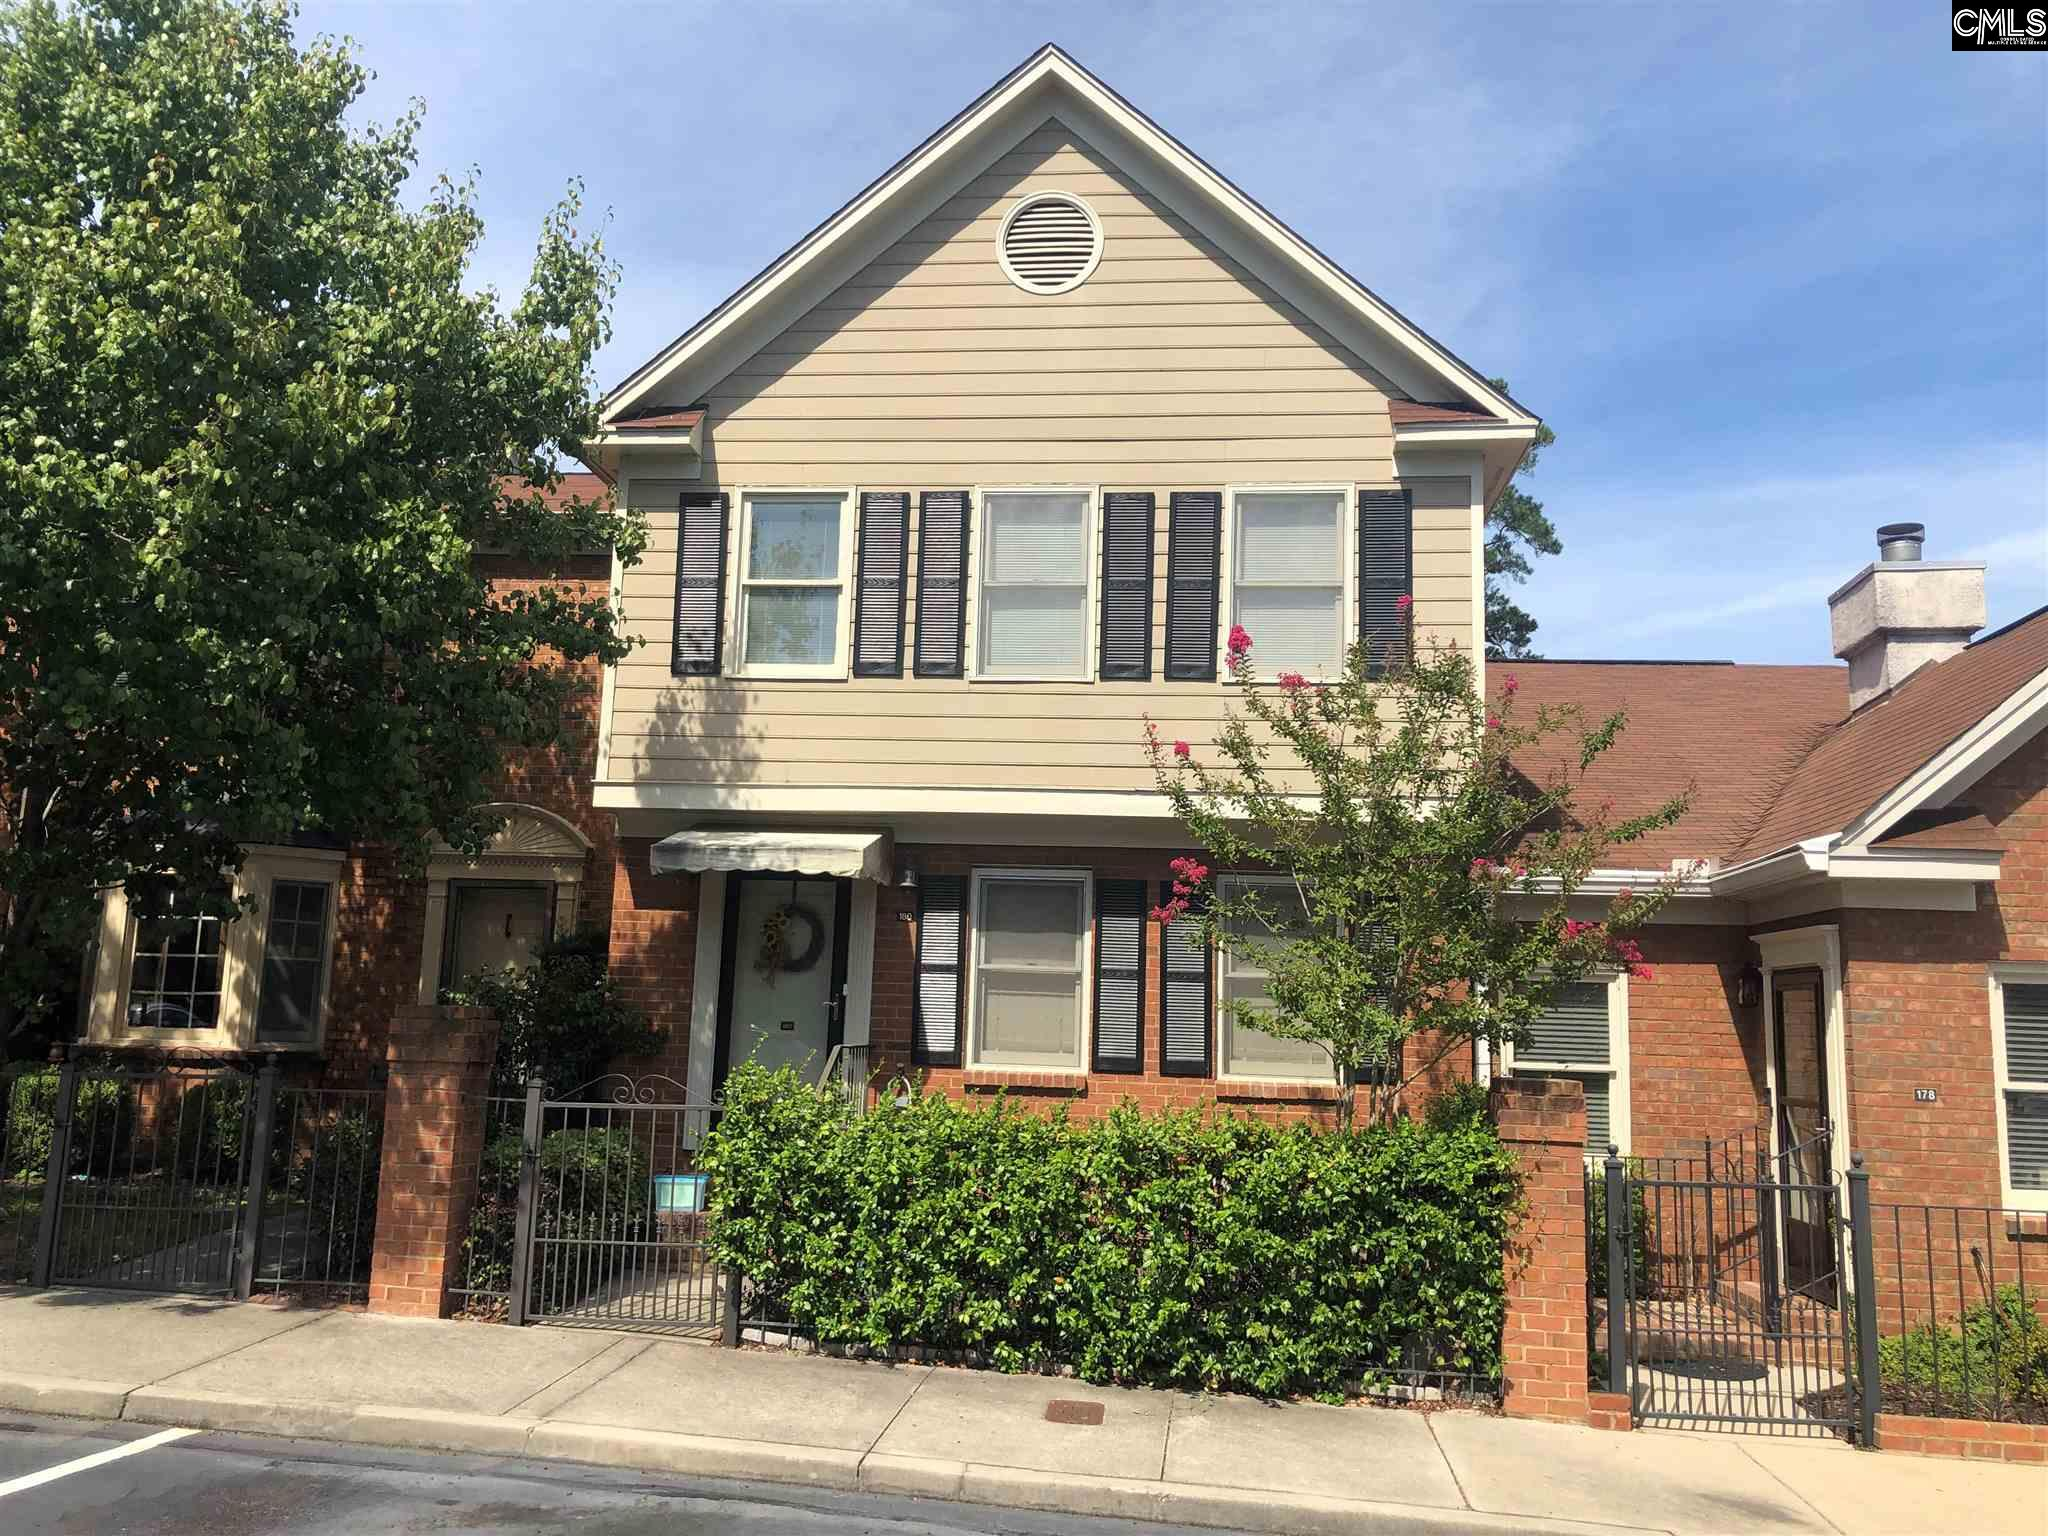 180 Carlyle Columbia, SC 29206